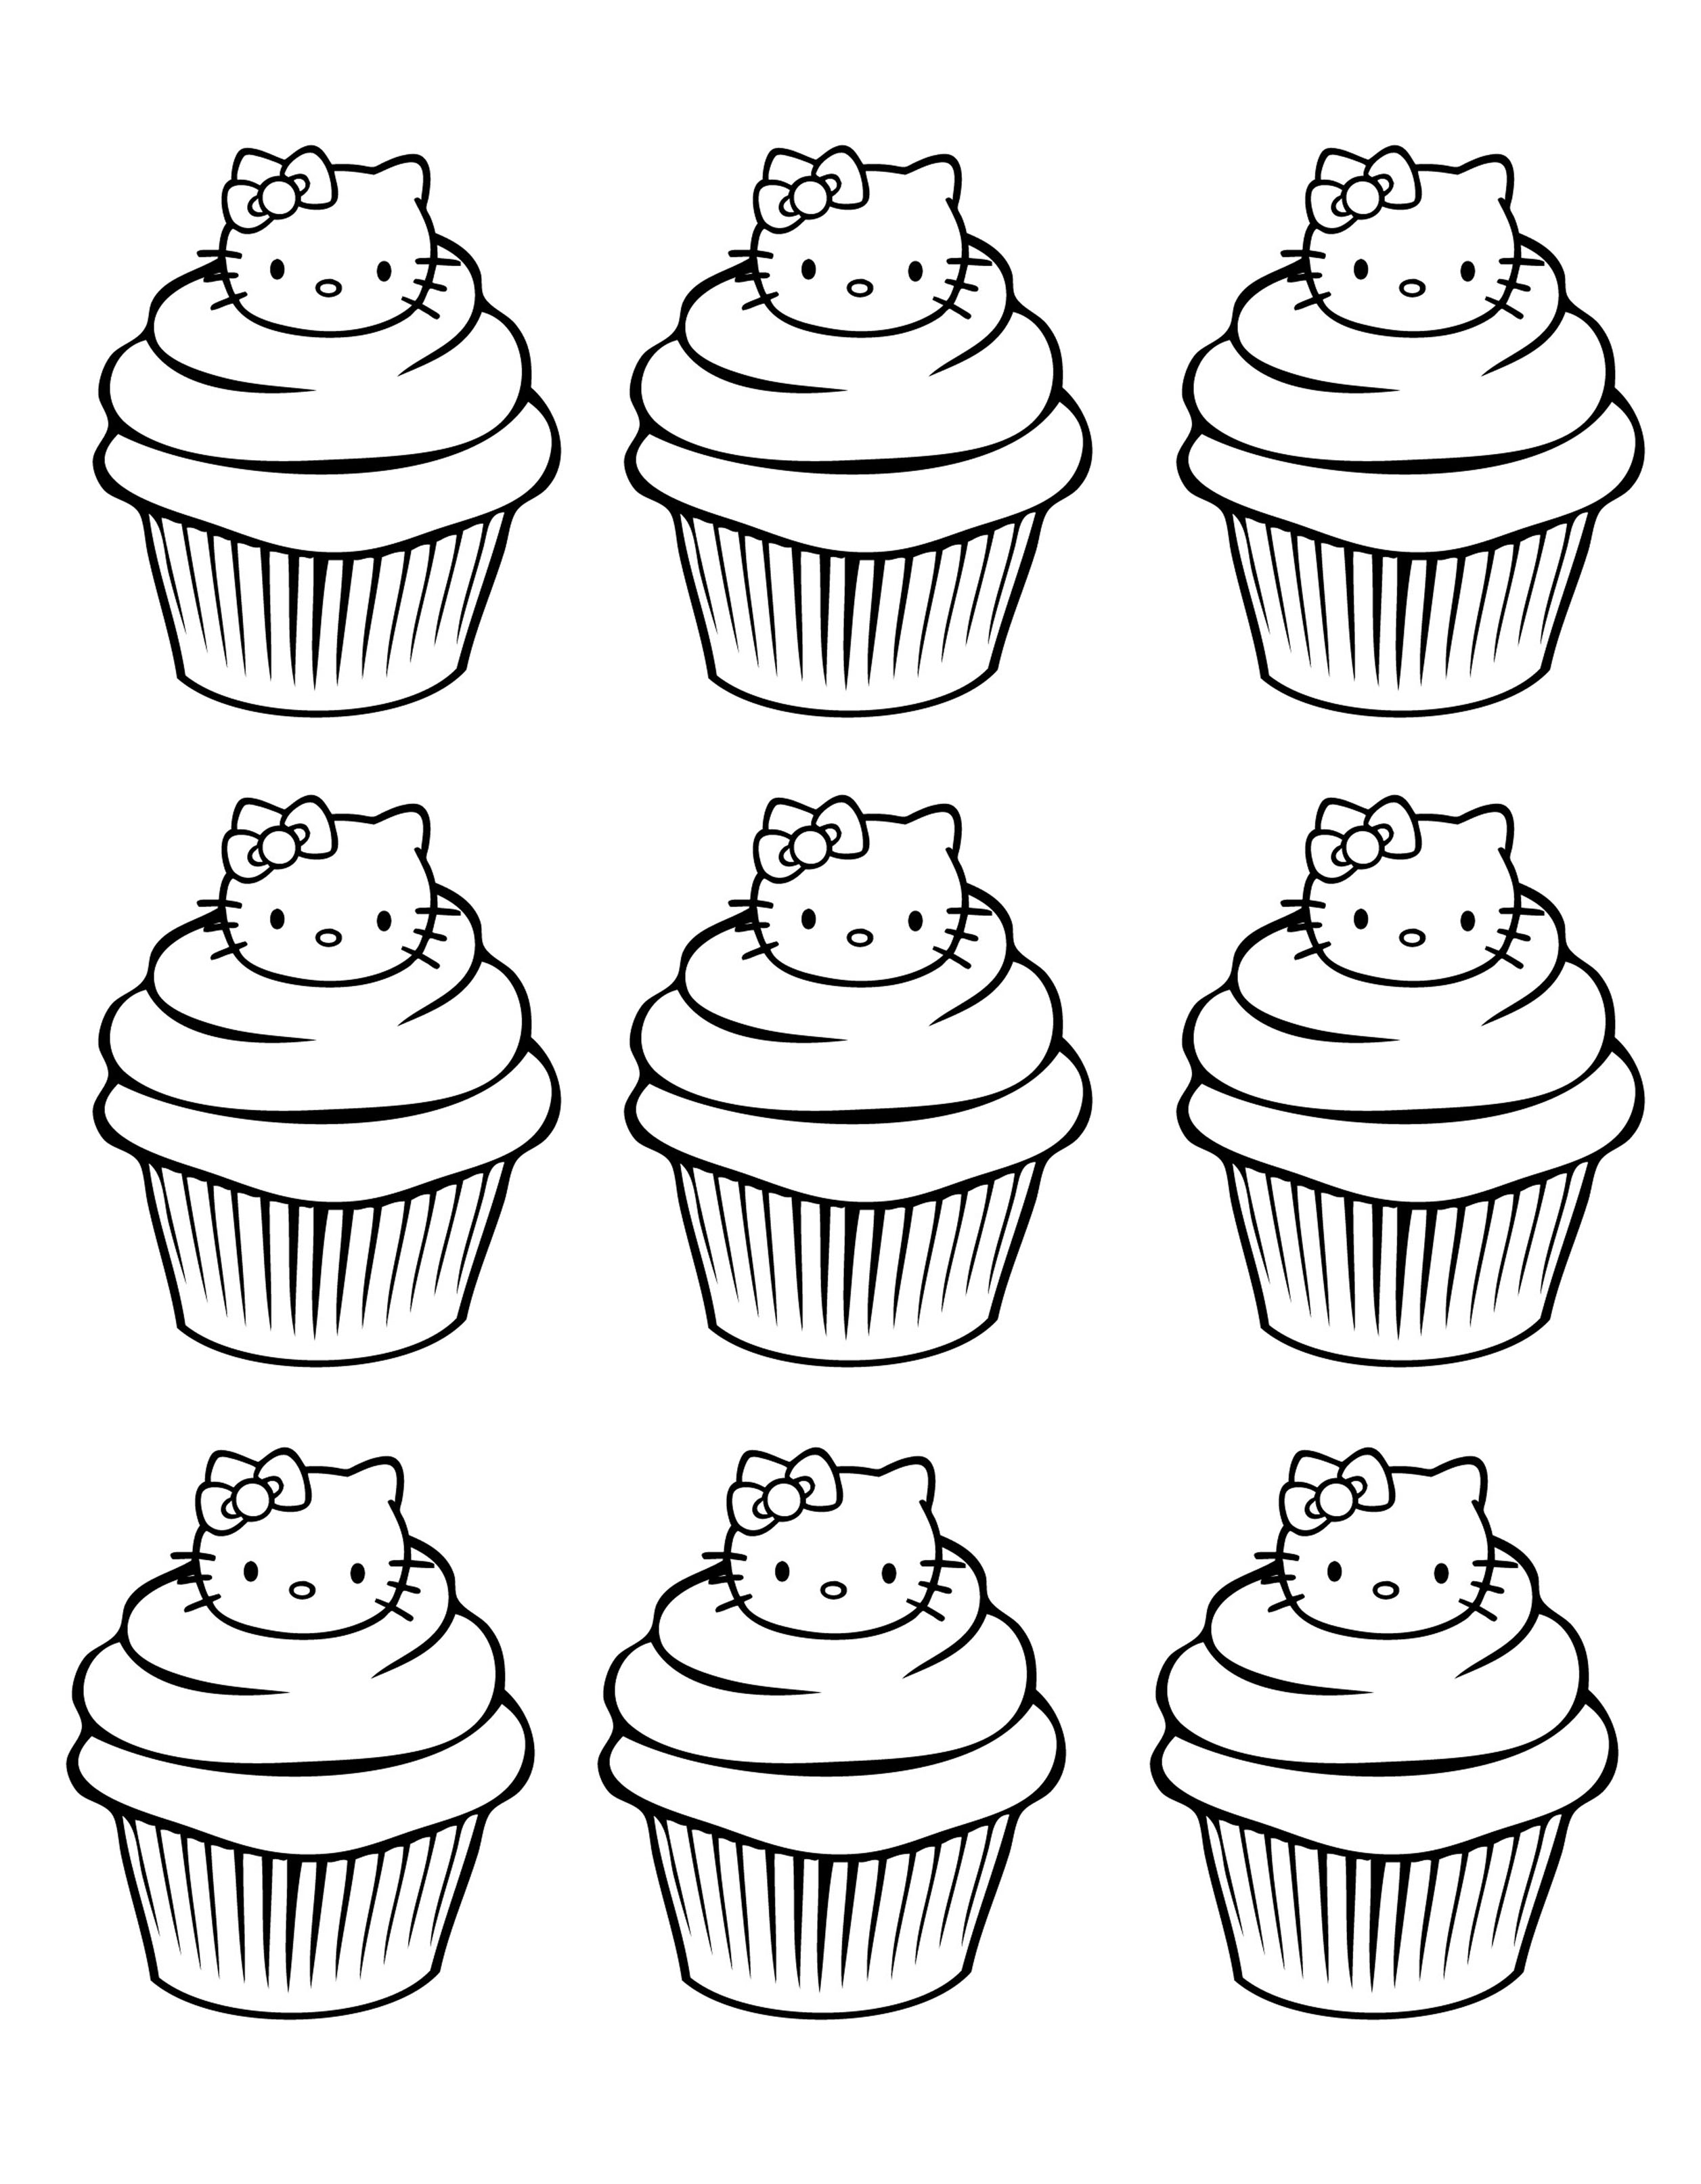 cup cake coloring pictures cupcakes and cakes free to color for kids cupcakes and cup coloring pictures cake